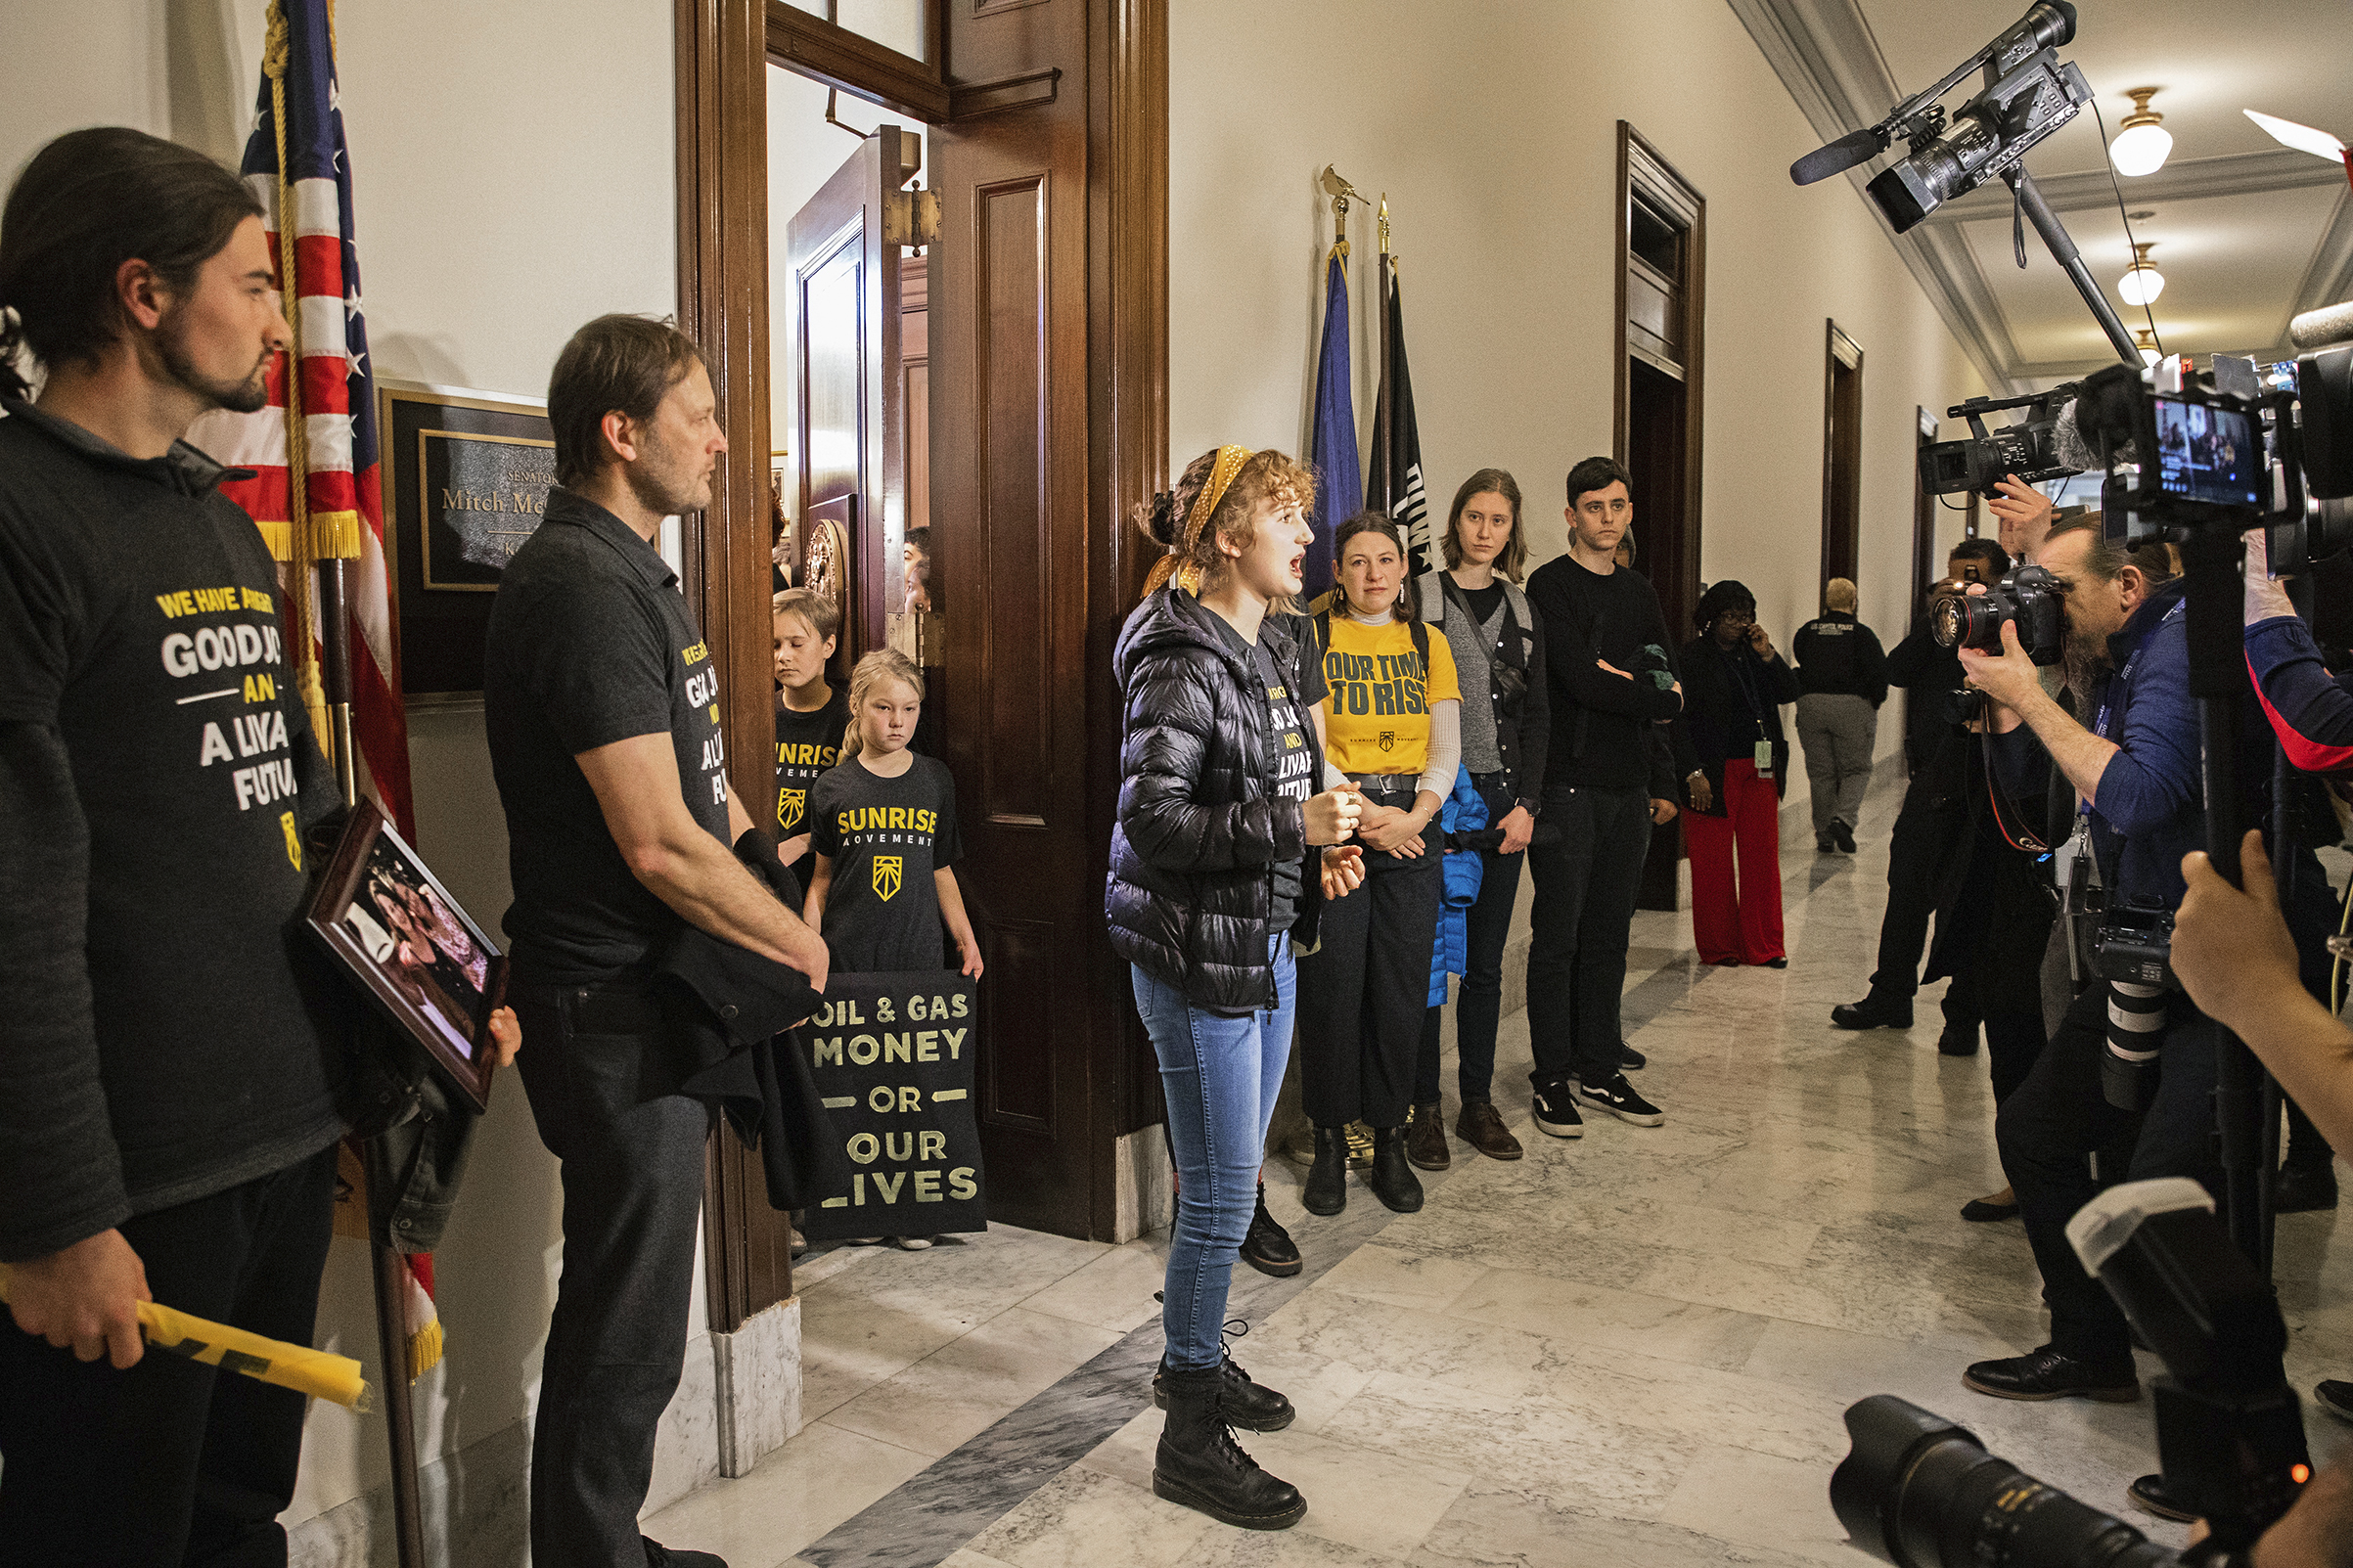 Sunrise Movement activists call for a Green New Deal on Capitol Hill